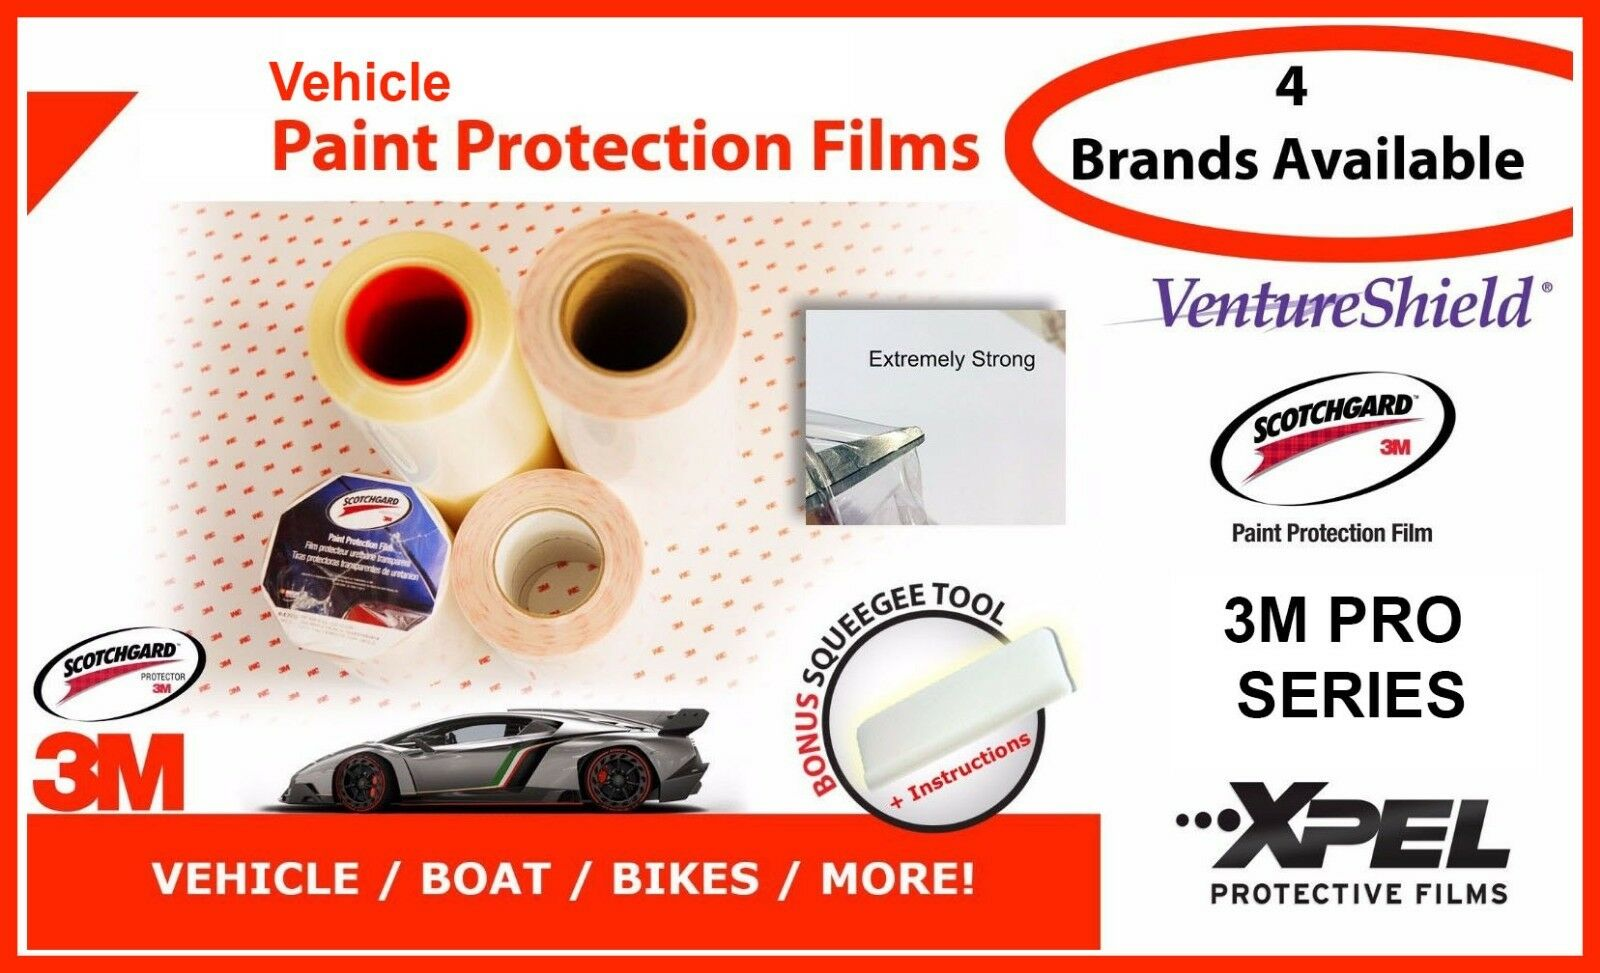 36  Wide Paint Protection Film ( Scotchgard   3M Pro Series   Xpel ) VEHICLE